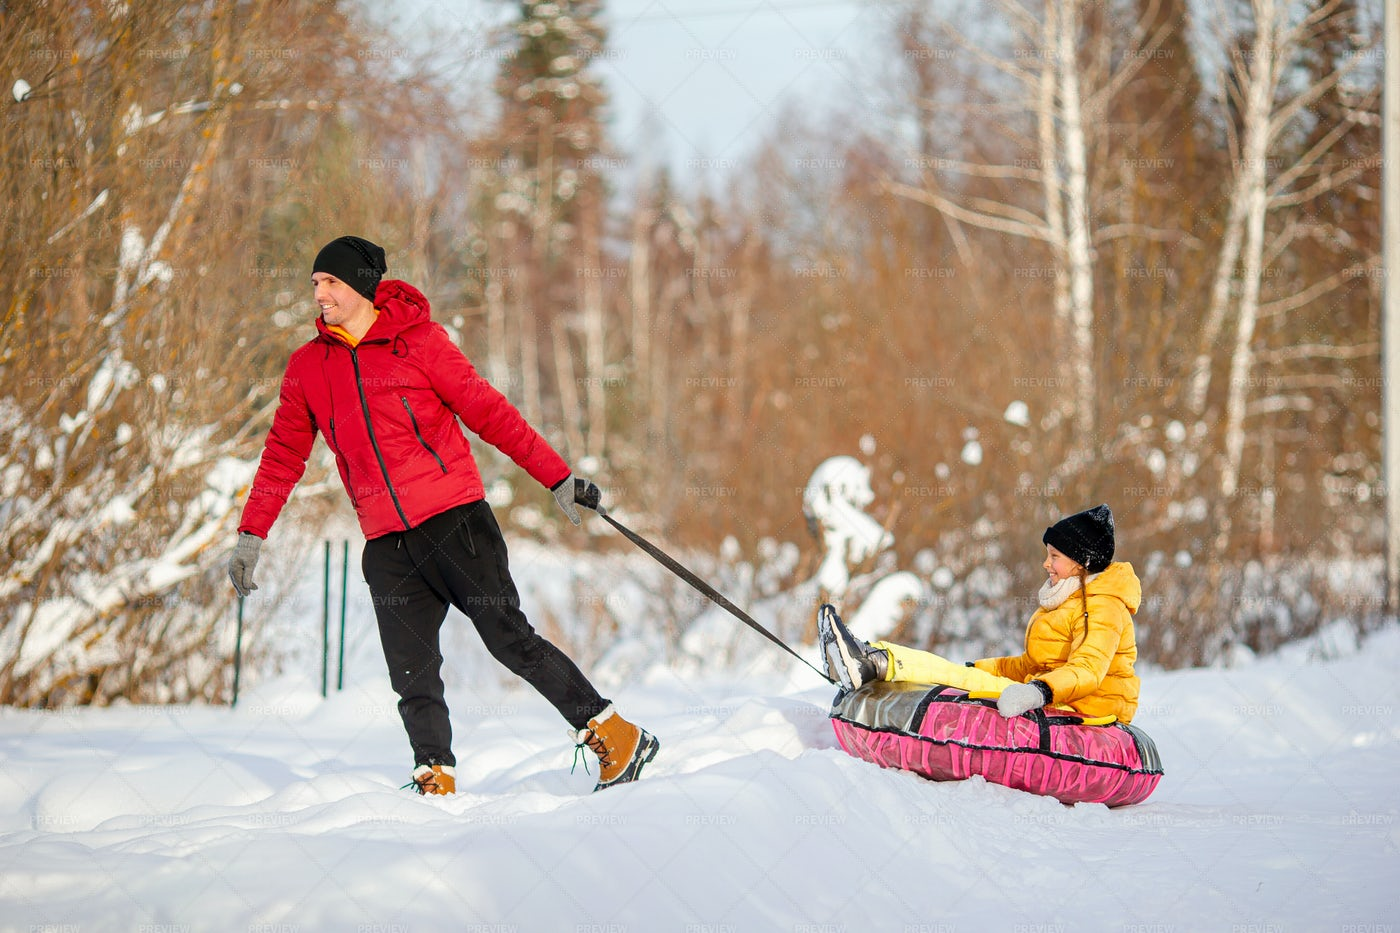 Dad Pulling His Kid On Sled: Stock Photos